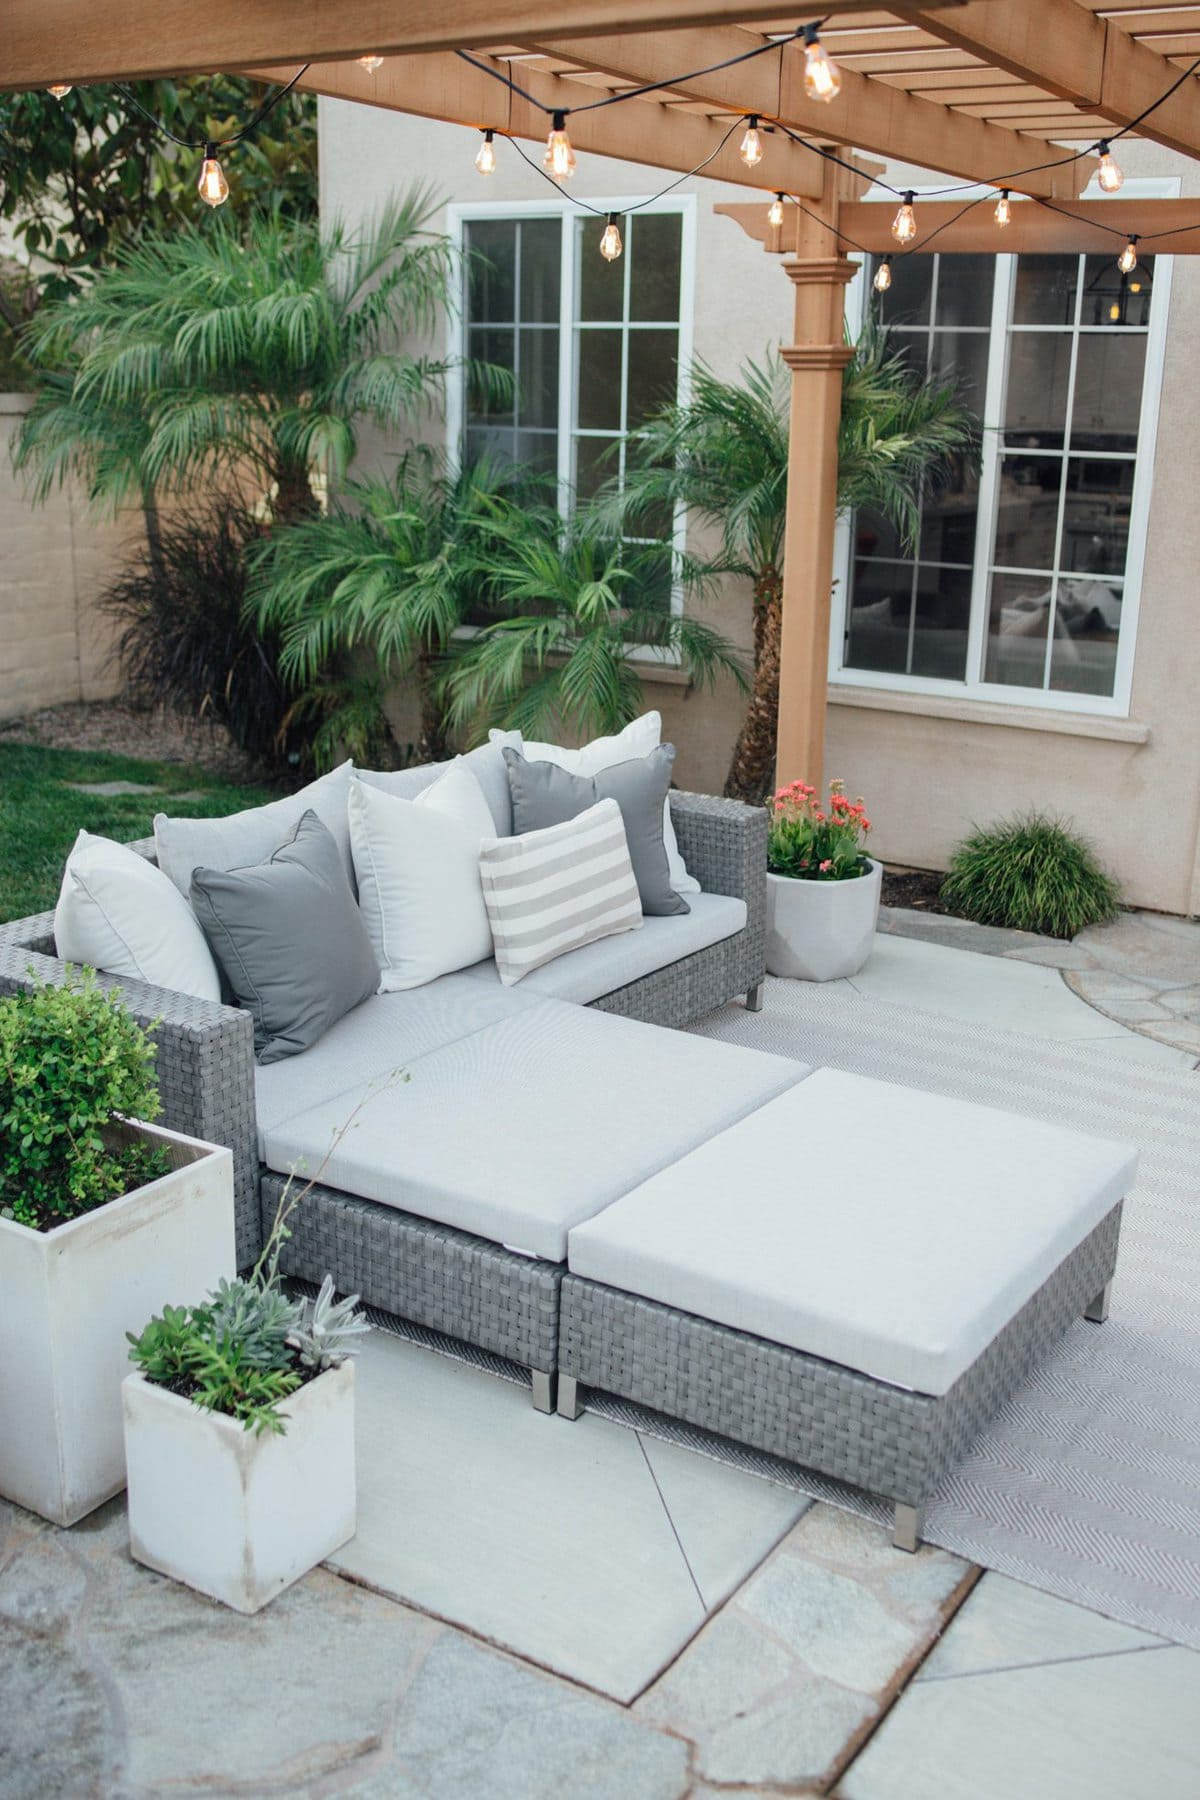 image fancy sling for terrace a more furniture redesign comfort back on chairs throughout home patio sale of to has the